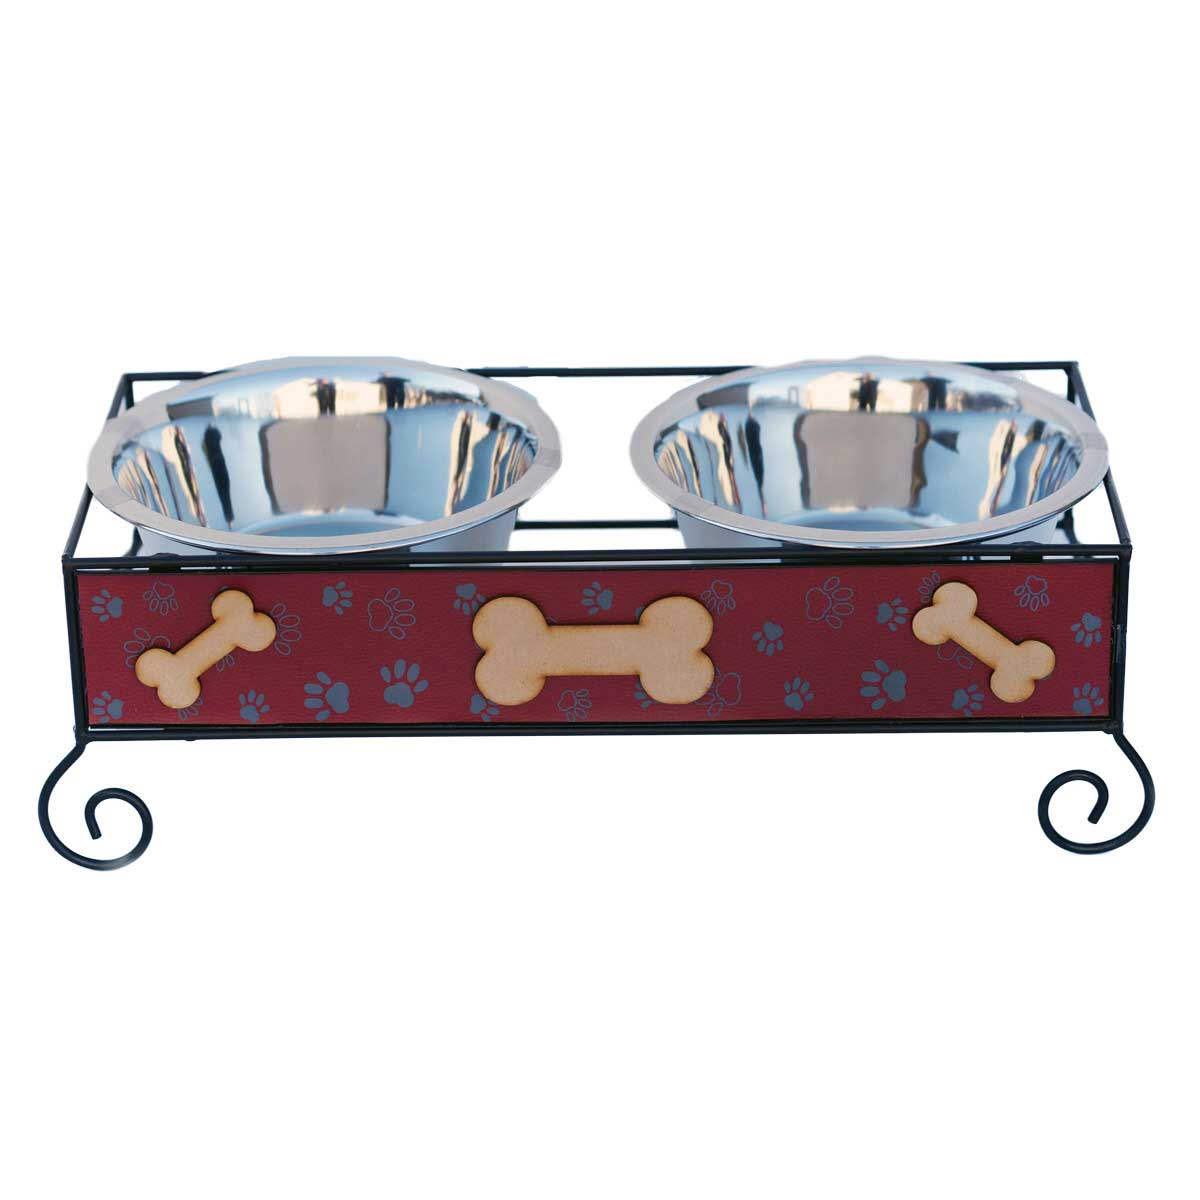 Wood And Iron Bone Design Indipets Luxe Craft Diner for Dogs 2 Quart